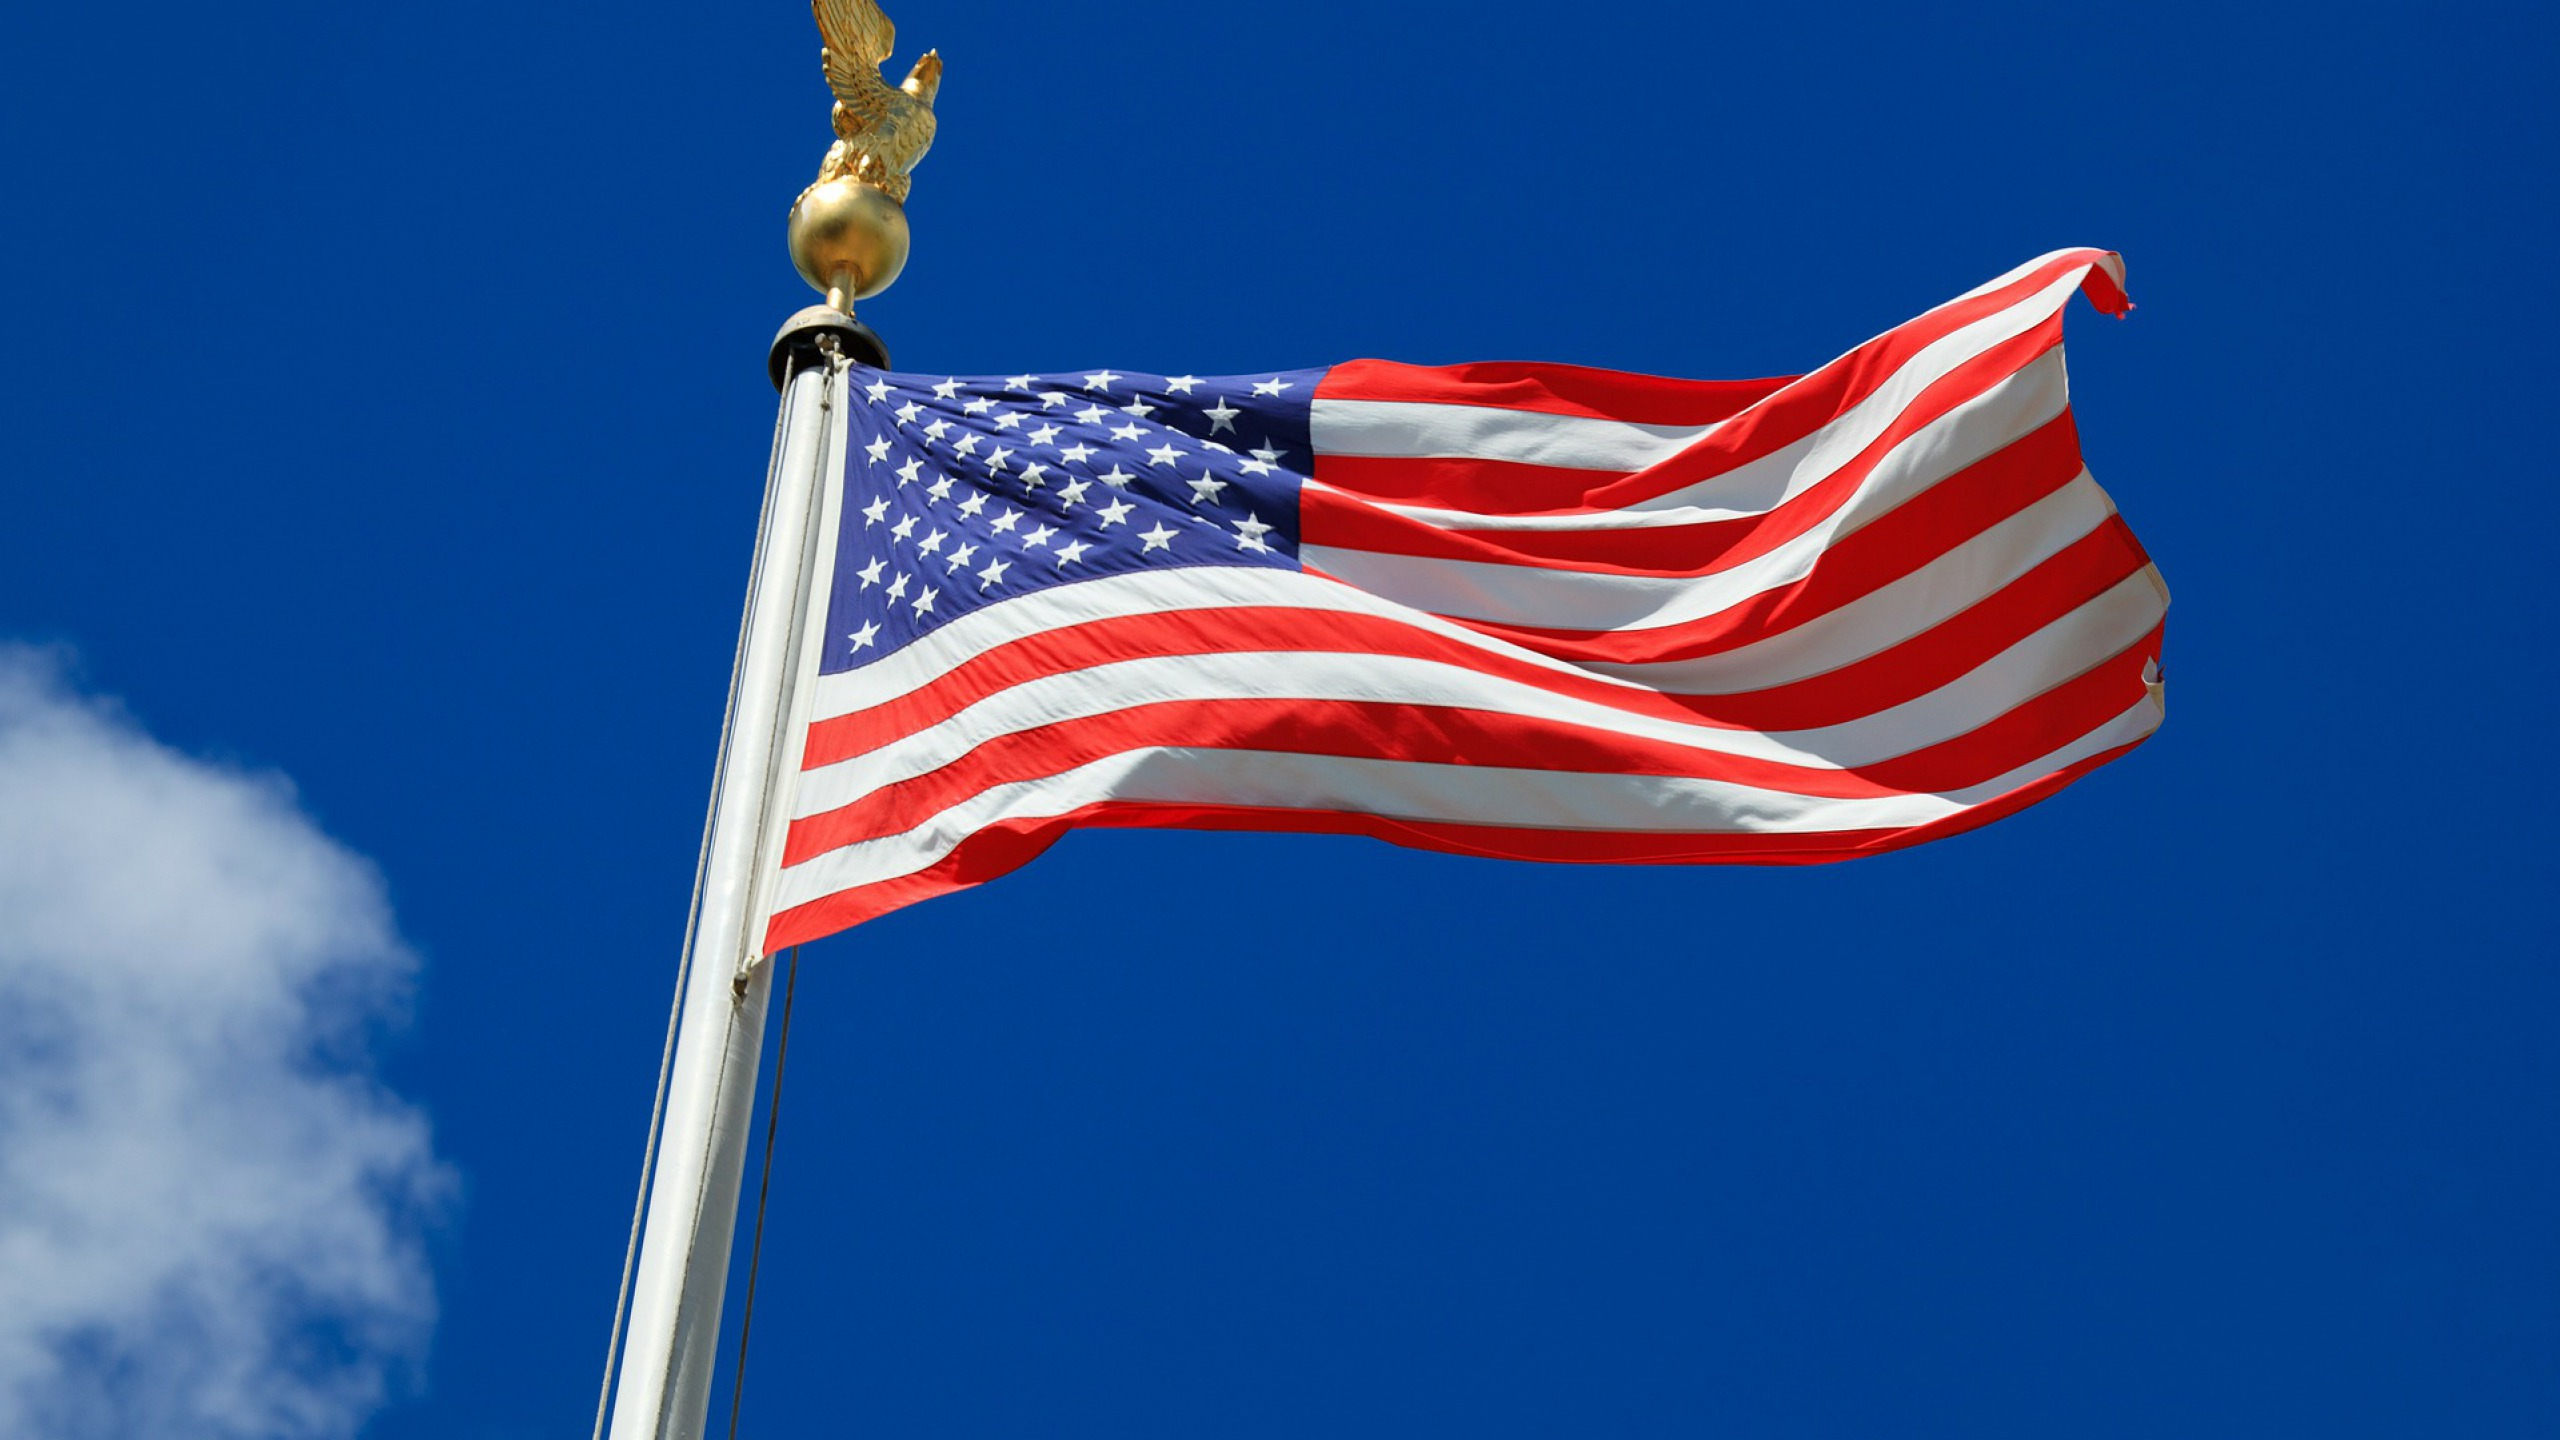 free download american hoisting flag wallpaper desktop download